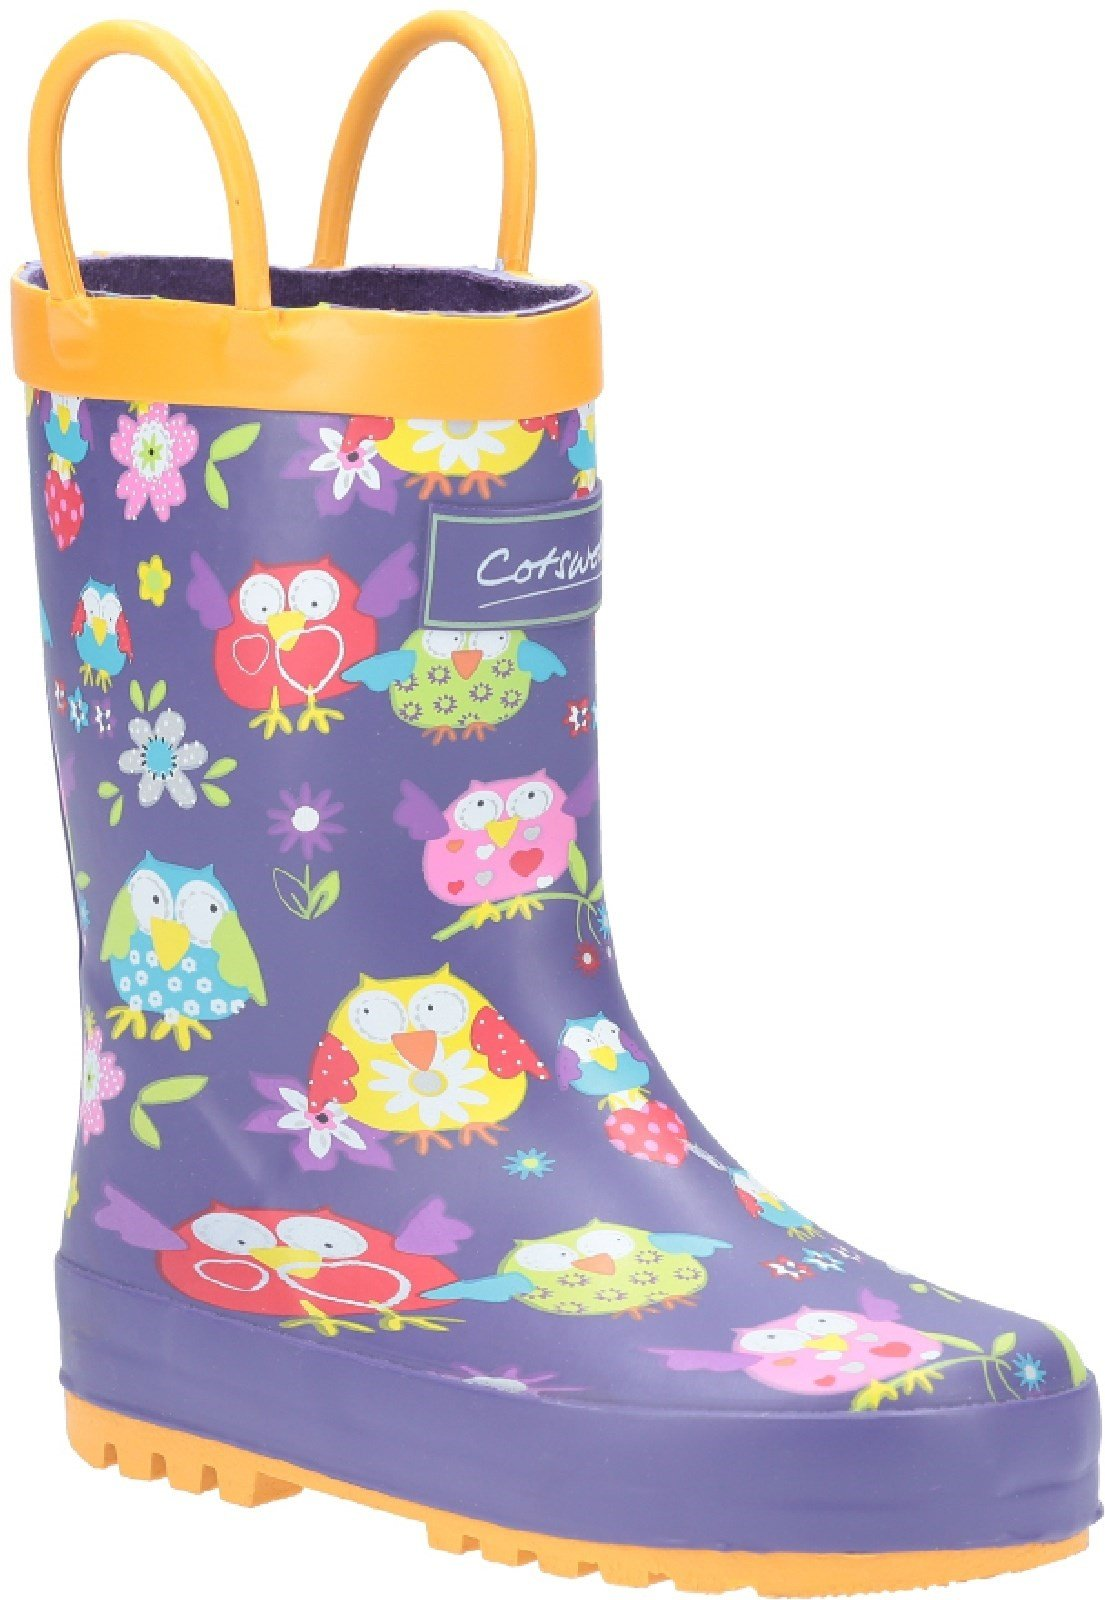 Cotswold Kids Puddle Waterproof Pull On Boot Multicolor 20962 - Owl 4.5